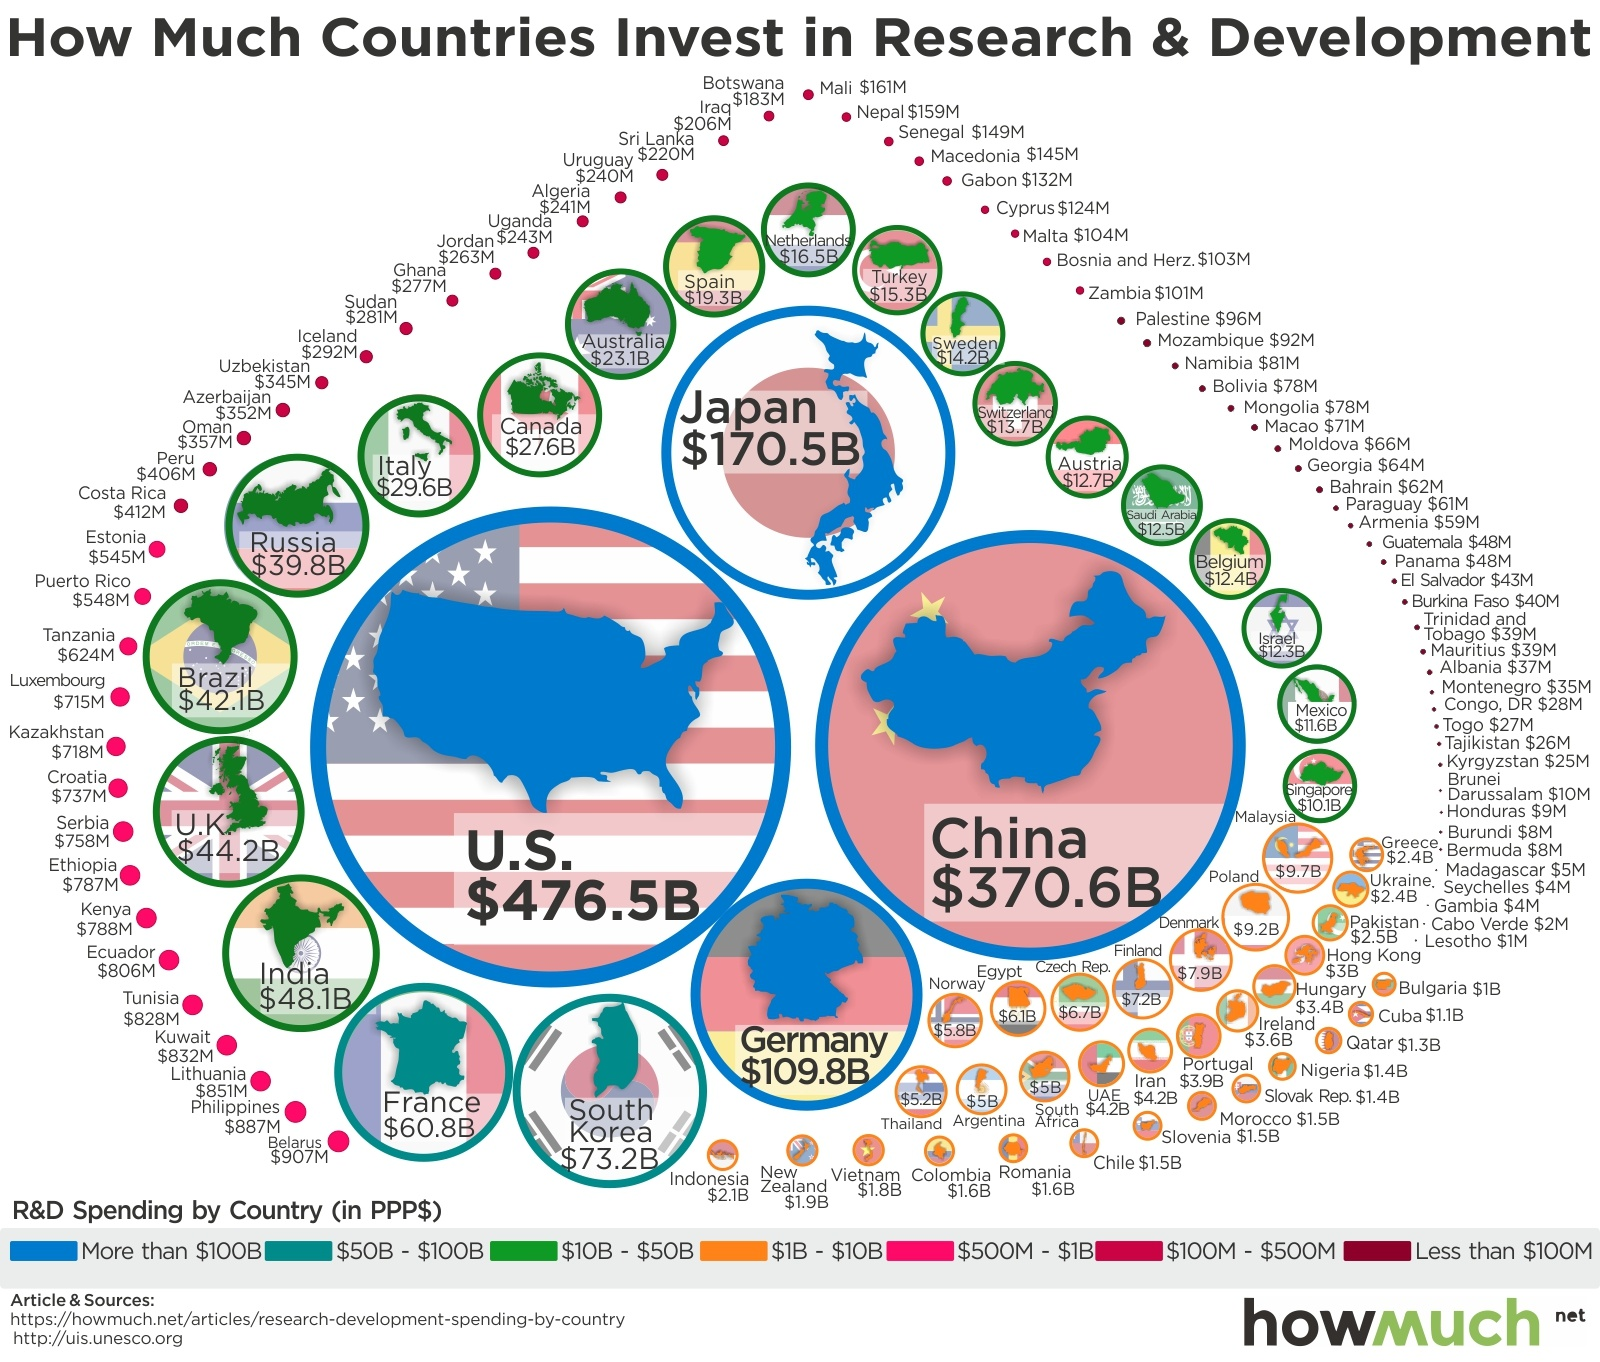 countries-invest-in-research-development-45e6.jpg